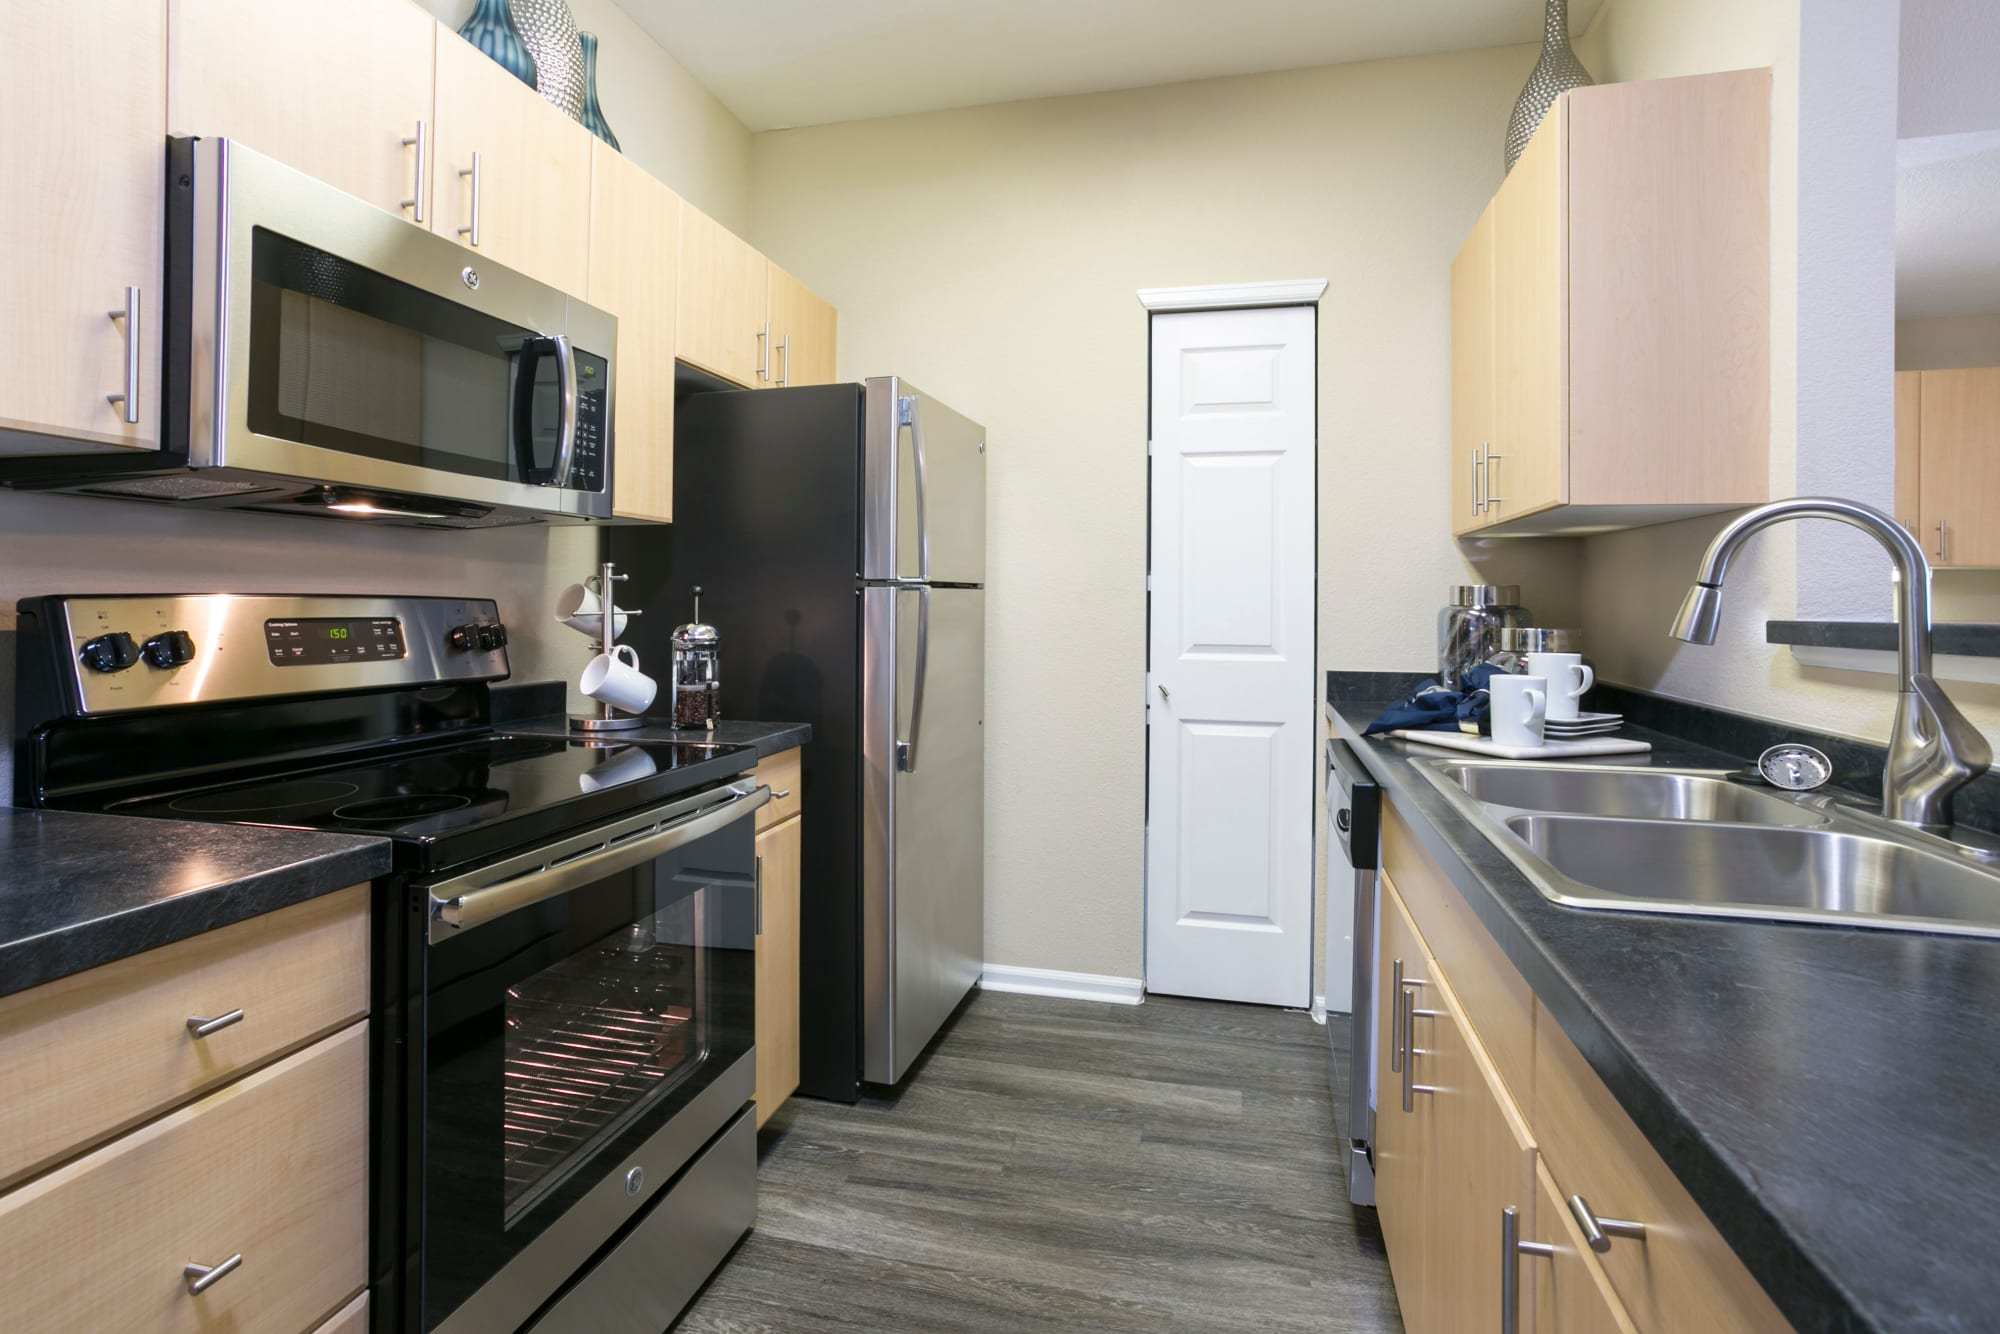 Renovated kitchen with beige cabinets at Crestone Apartments in Aurora, Colorado